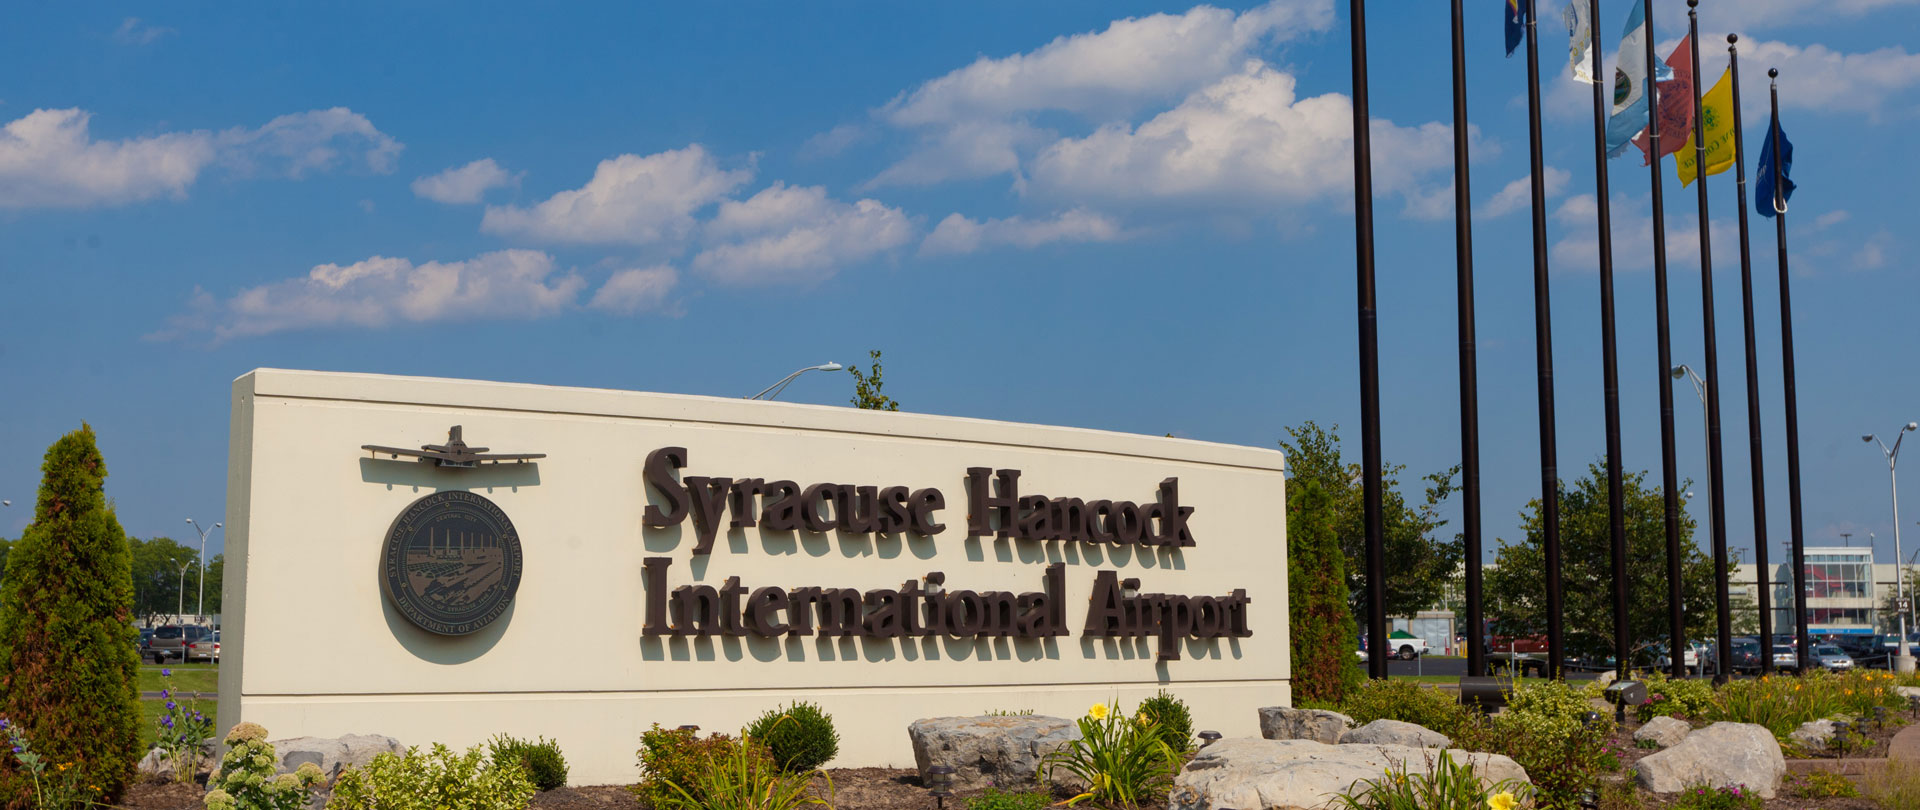 Syracuse Airport